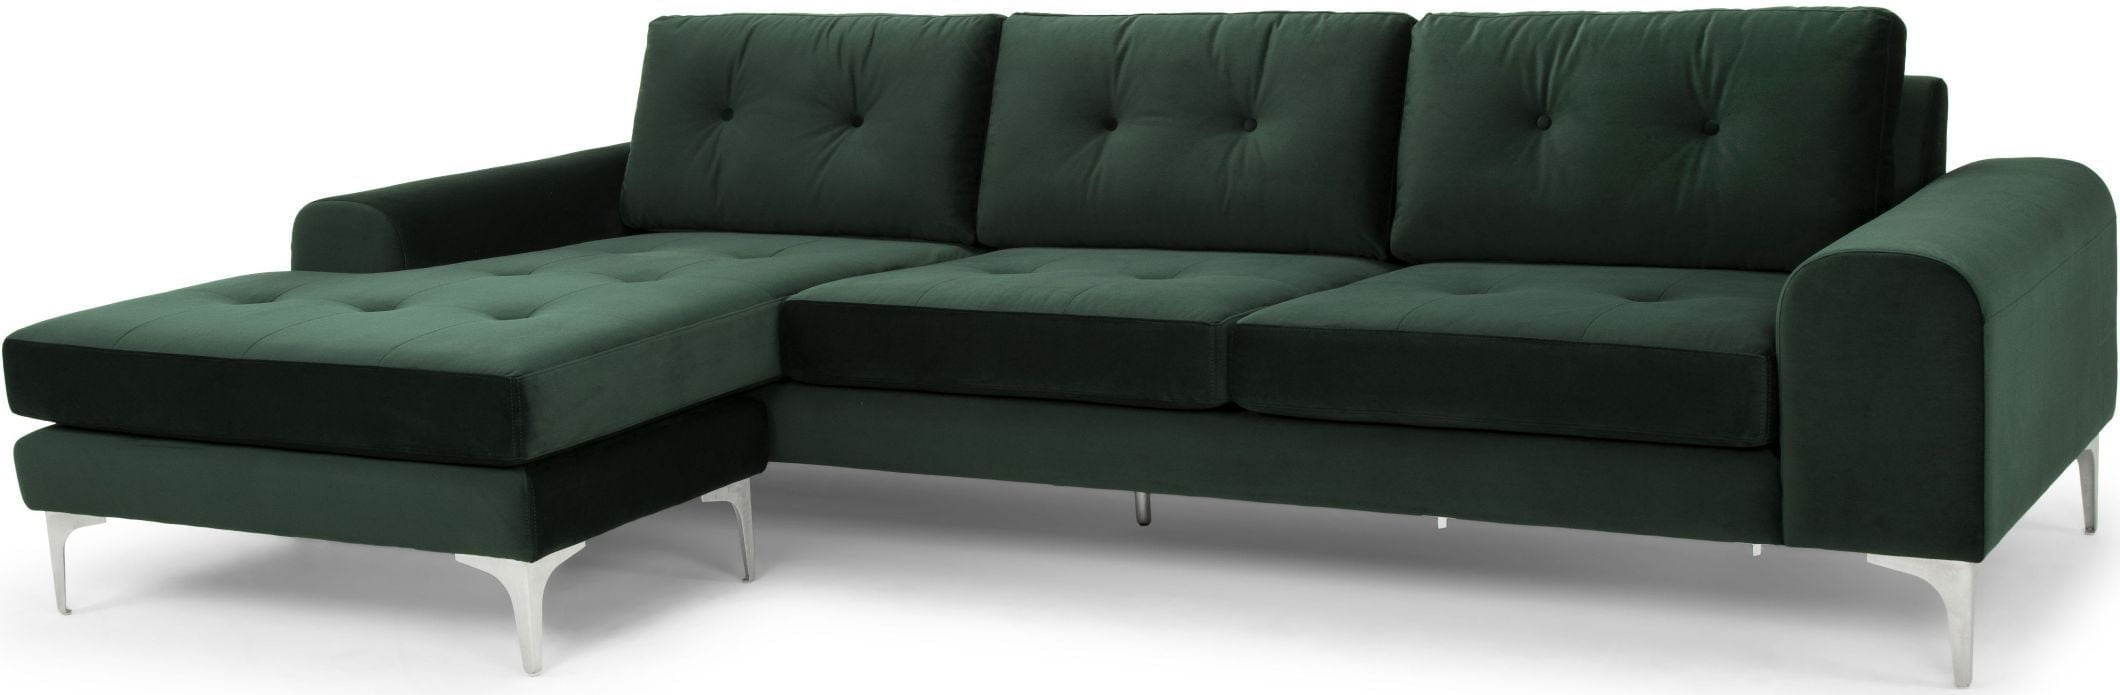 sofa excellent sectionalfa for bluefas inspirations dark green curved sale photos sectional apple